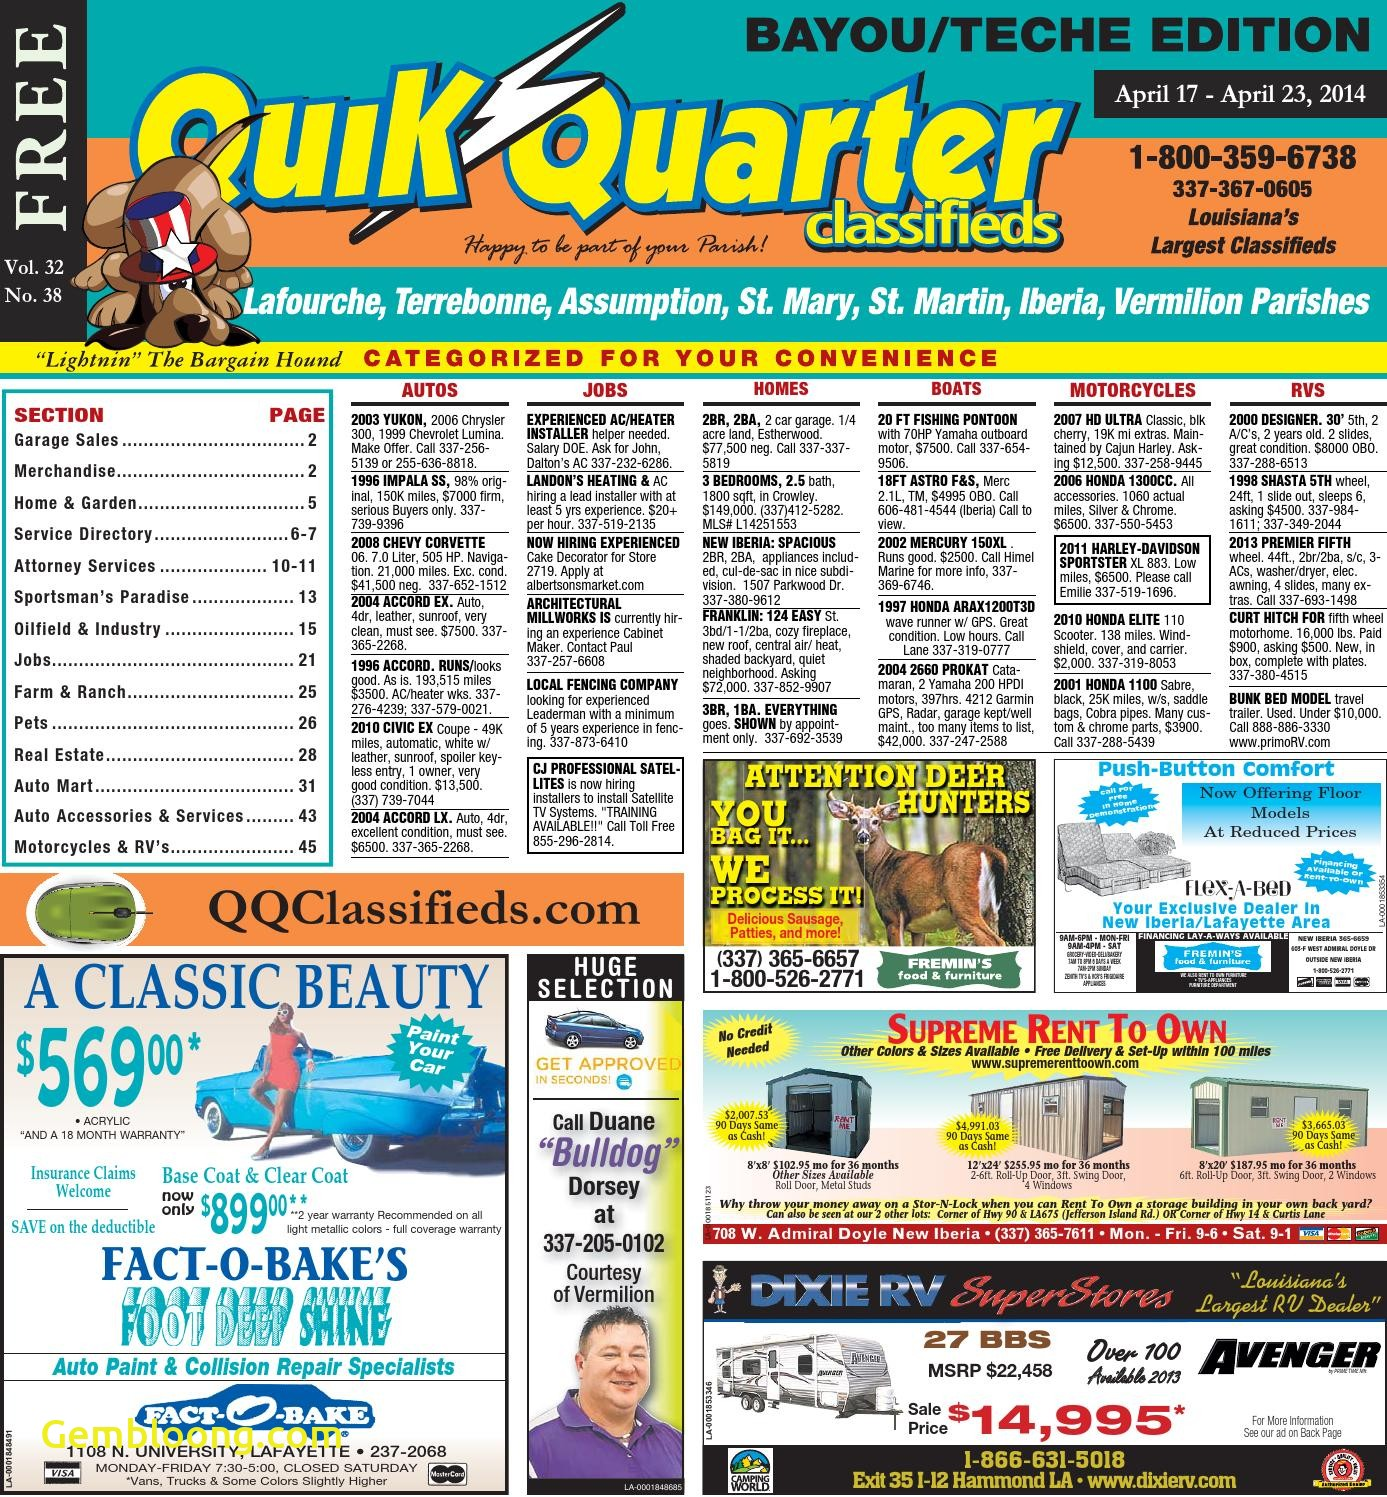 Carfax Accident Report Best Of Qq Teche 04 17 2014 by Part Of the Usa today Network issuu